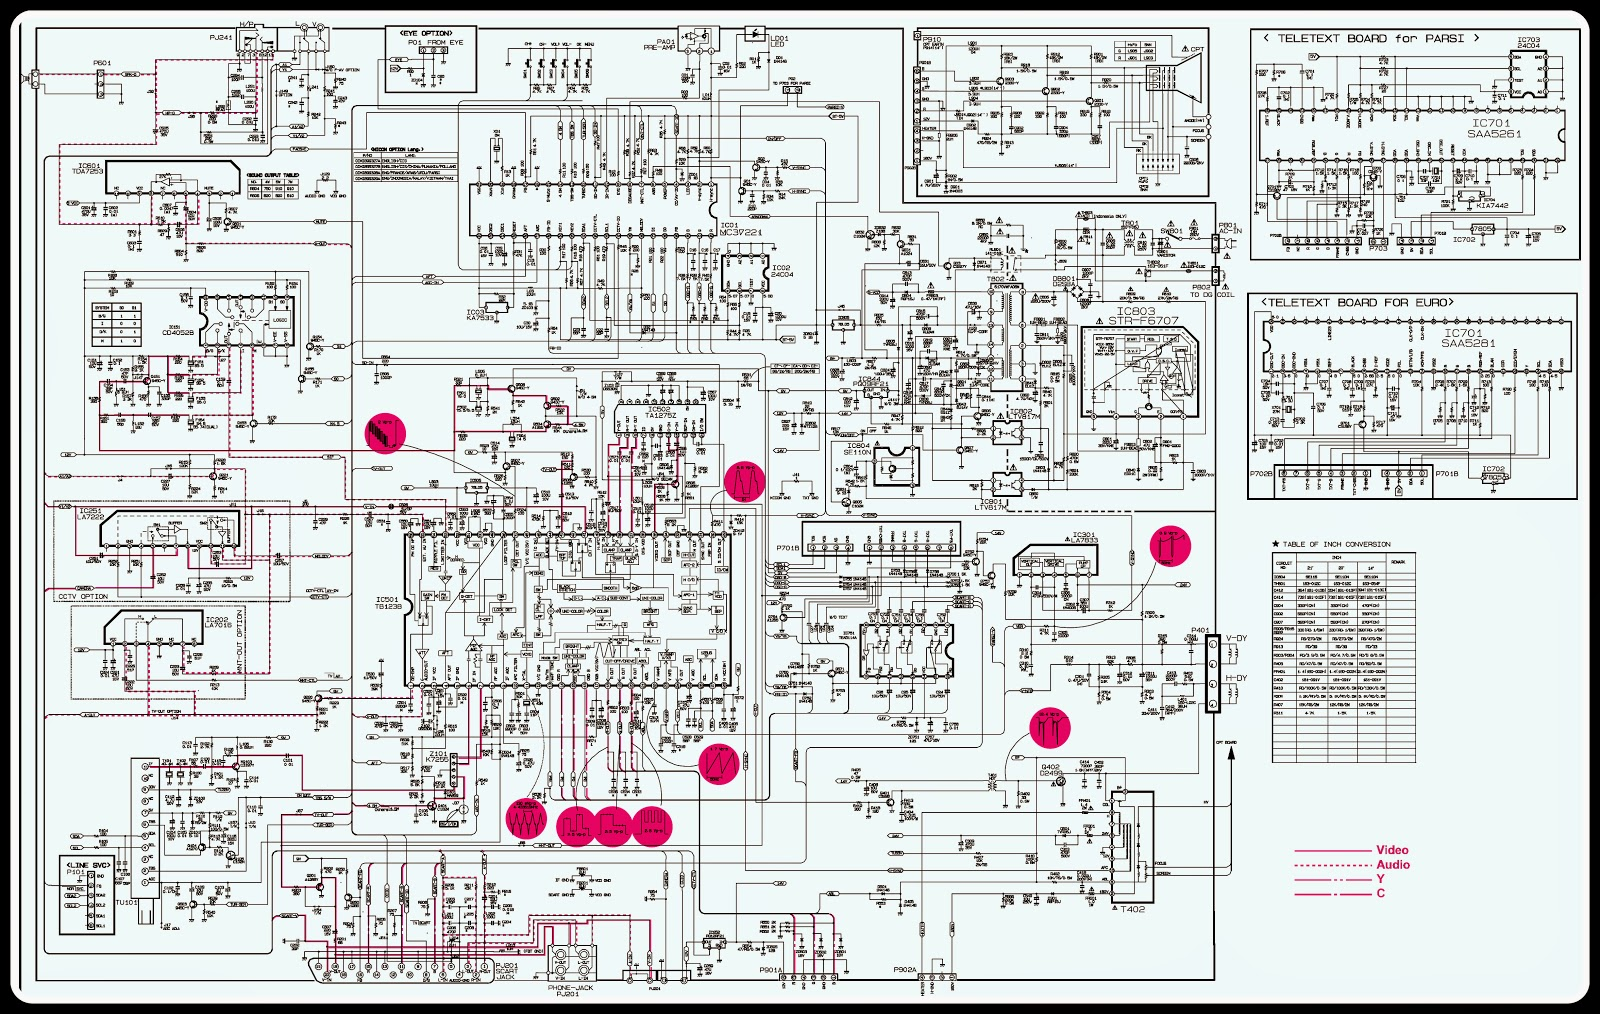 led tv circuit diagram pdf wiring diagram post led tv circuit diagram pdf led tv circuit diagrams [ 1600 x 1014 Pixel ]